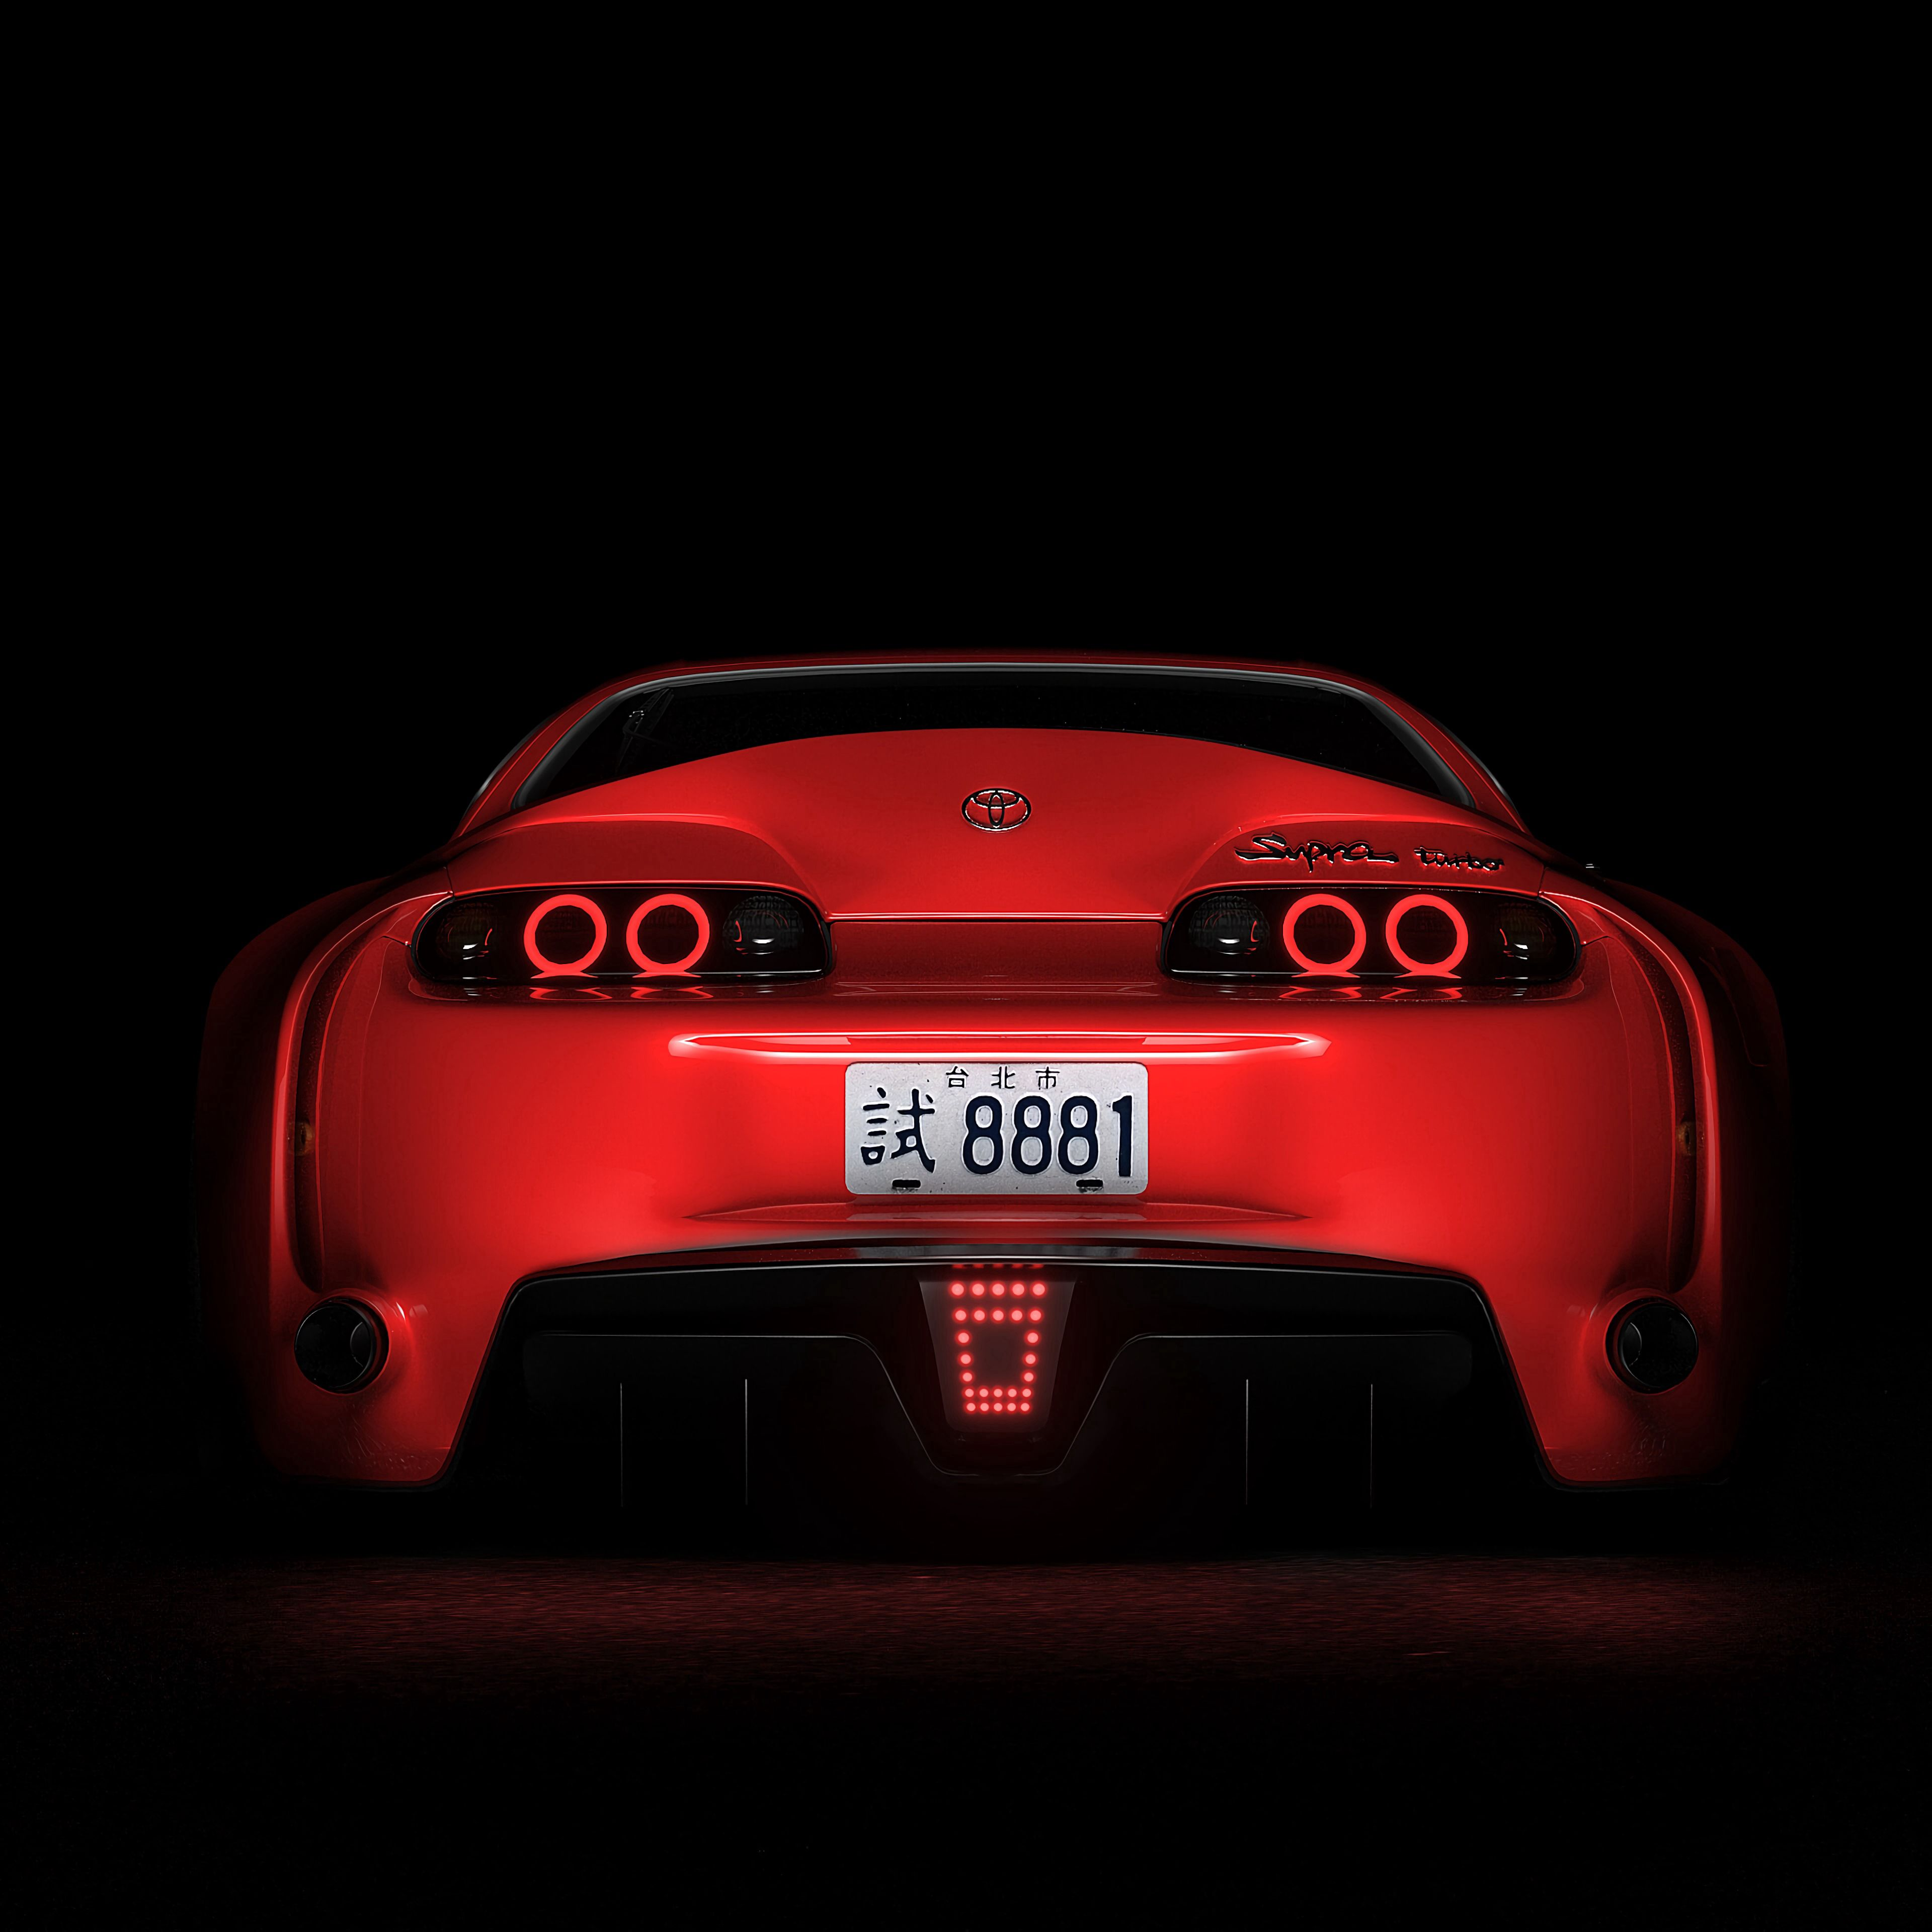 85232 download wallpaper Cars, Toyota Supra, Toyota, Sports Car, Sports, Back View, Rear View, Dark, Backlight, Illumination screensavers and pictures for free